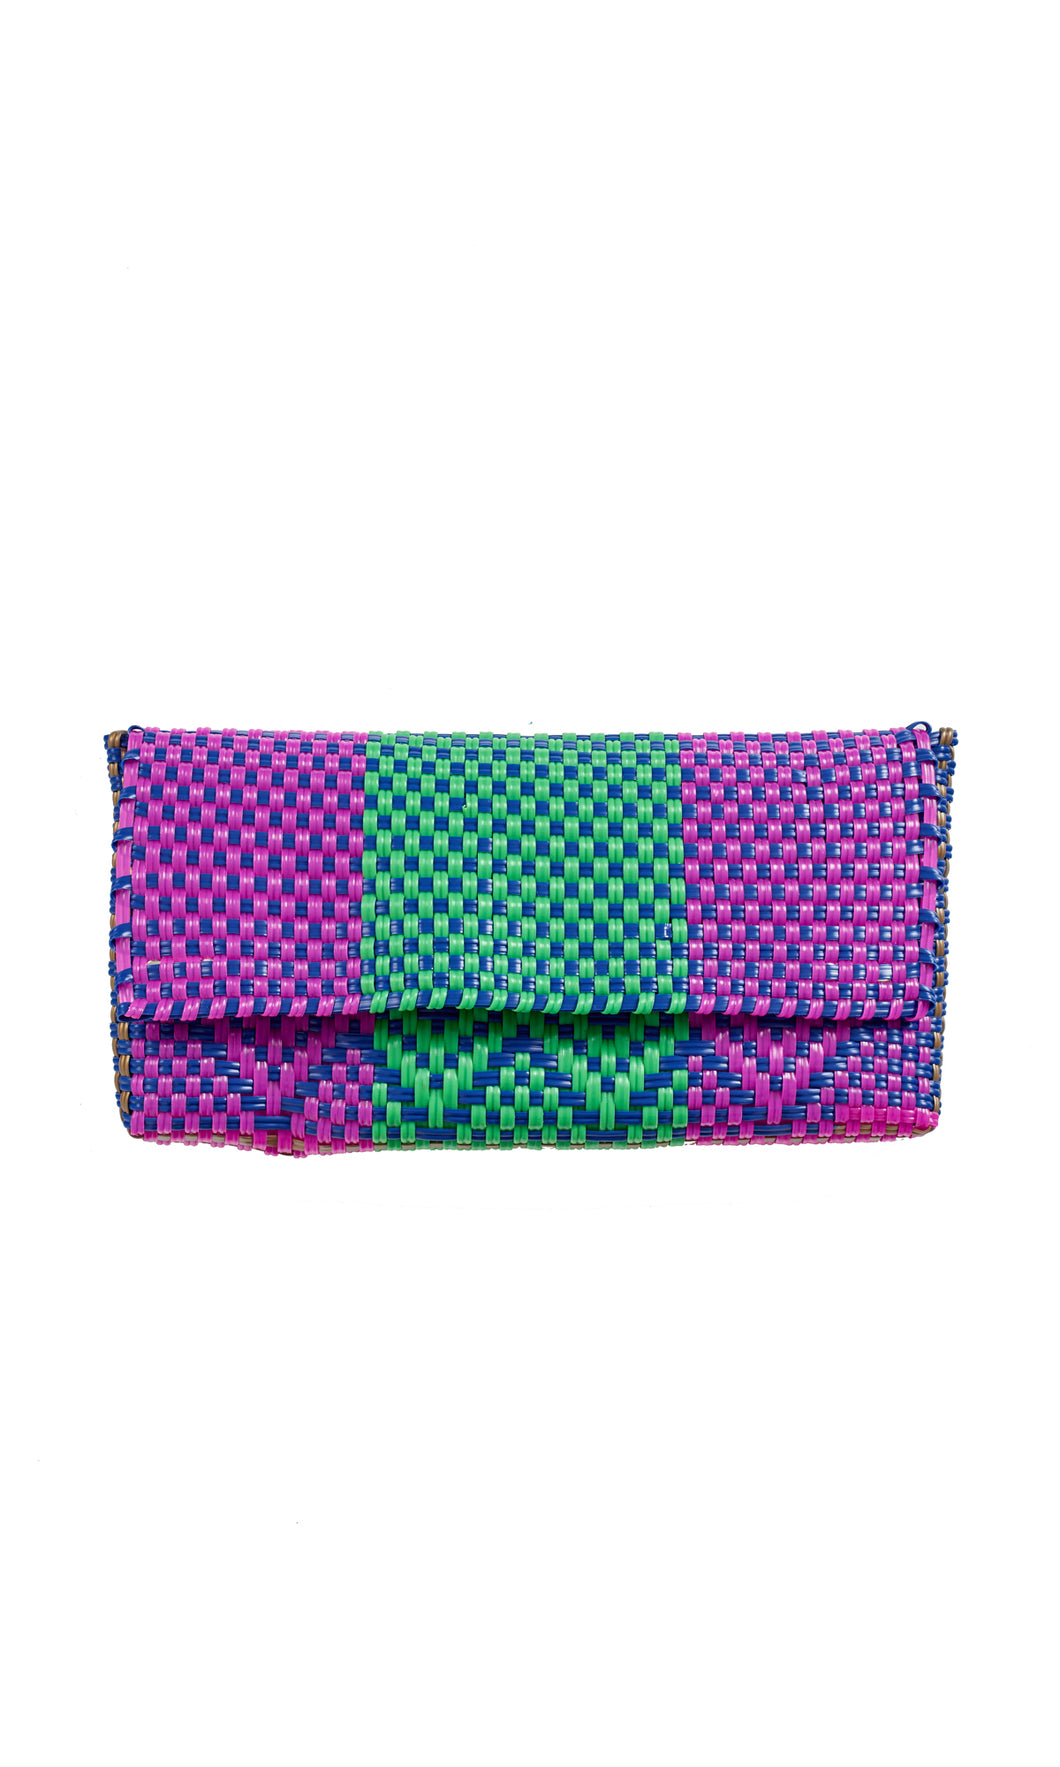 Fuchsia, Blue, Green & Gold Clutch Bag